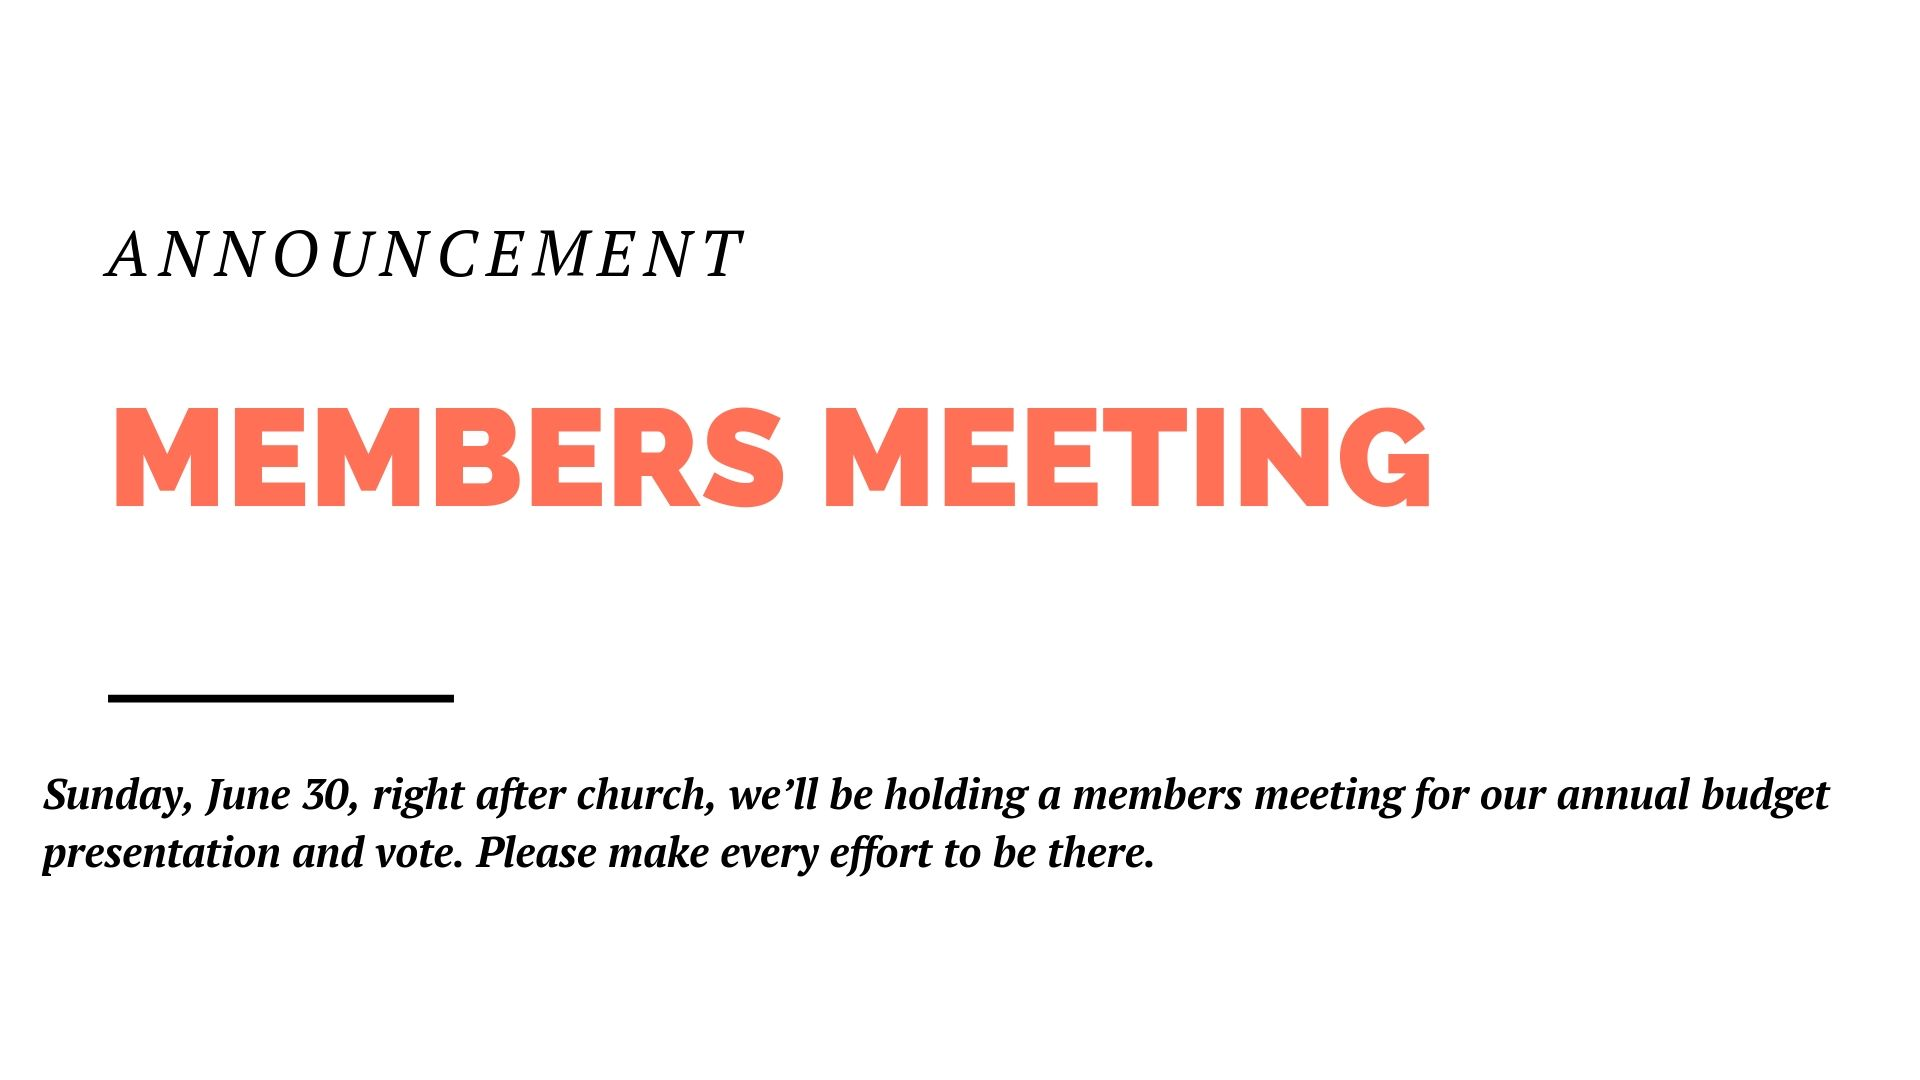 Mark your calendars, Sunday, June 30, right after church, we'll be holding a members meeting for our annual budget presentation and vote. Please make every effort to be there.